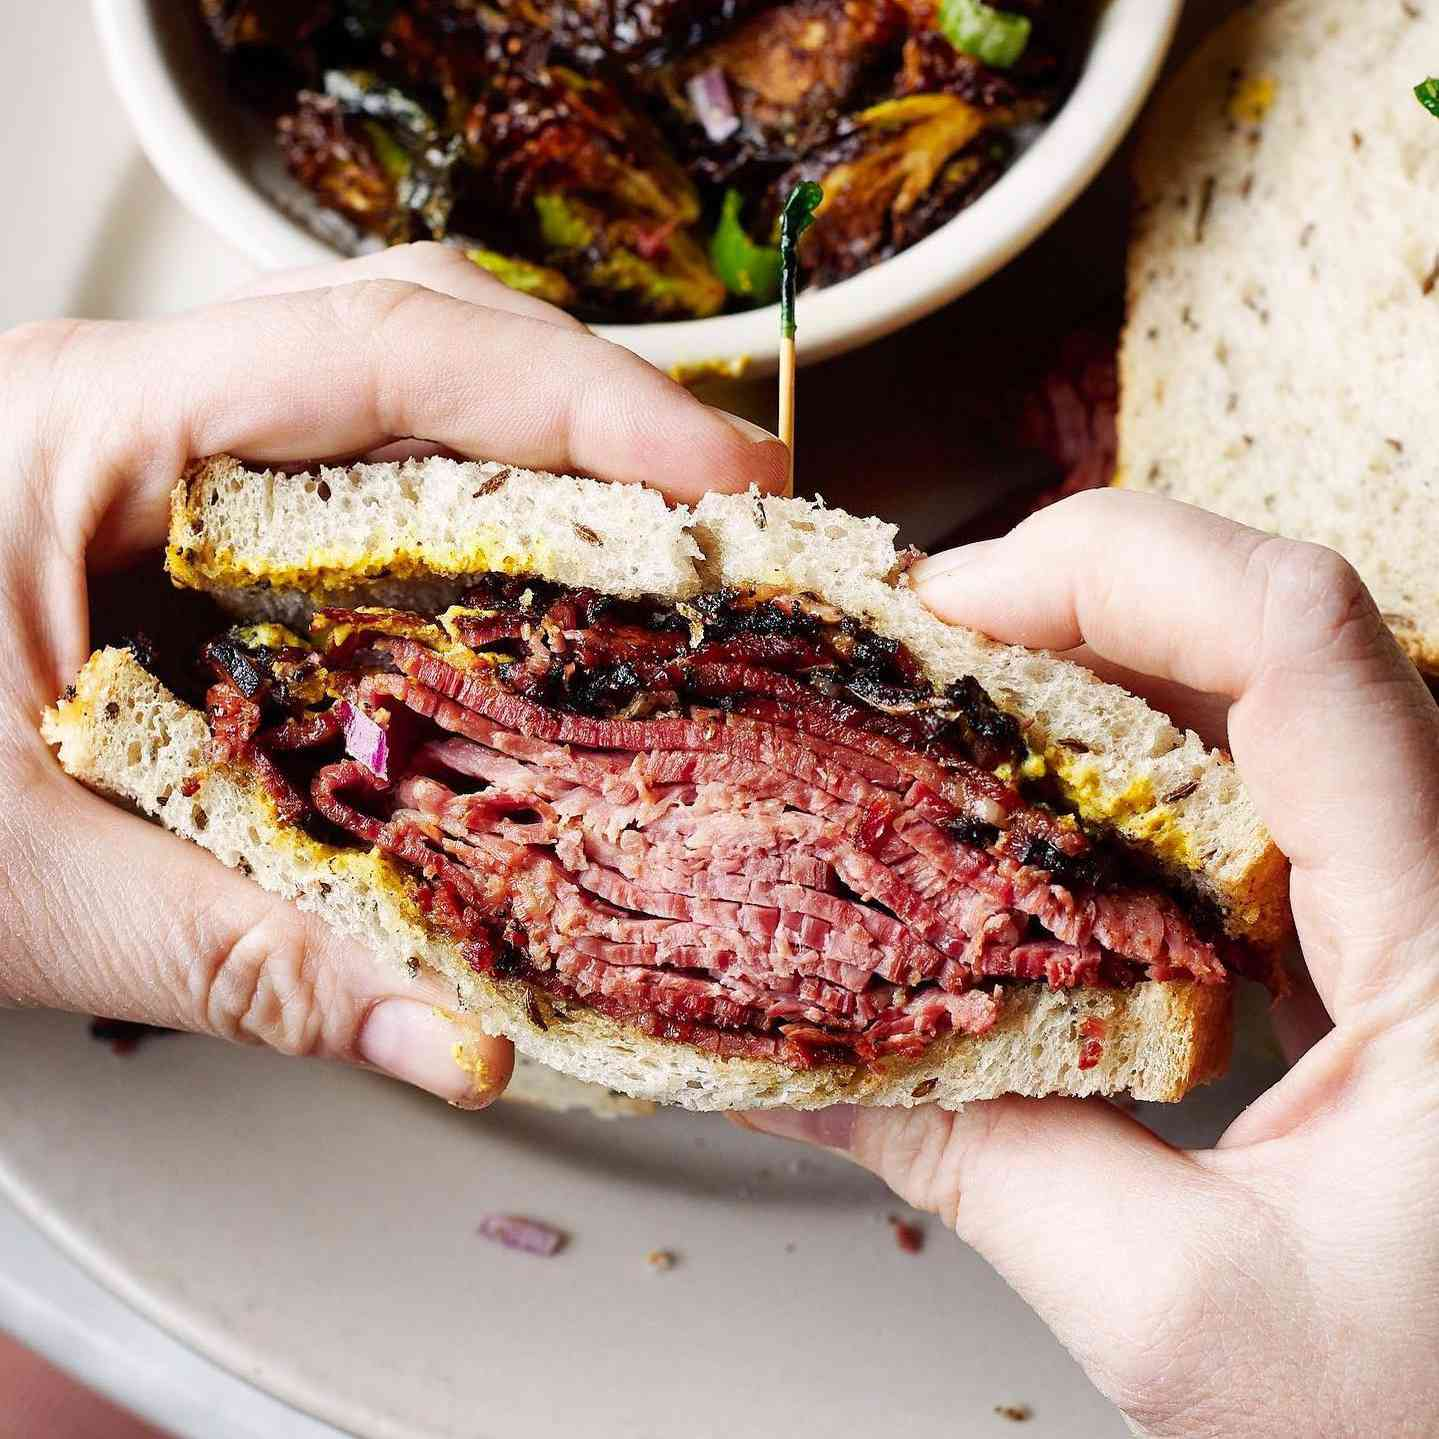 Pair of pale-skinned hands holding a reuben sandwich